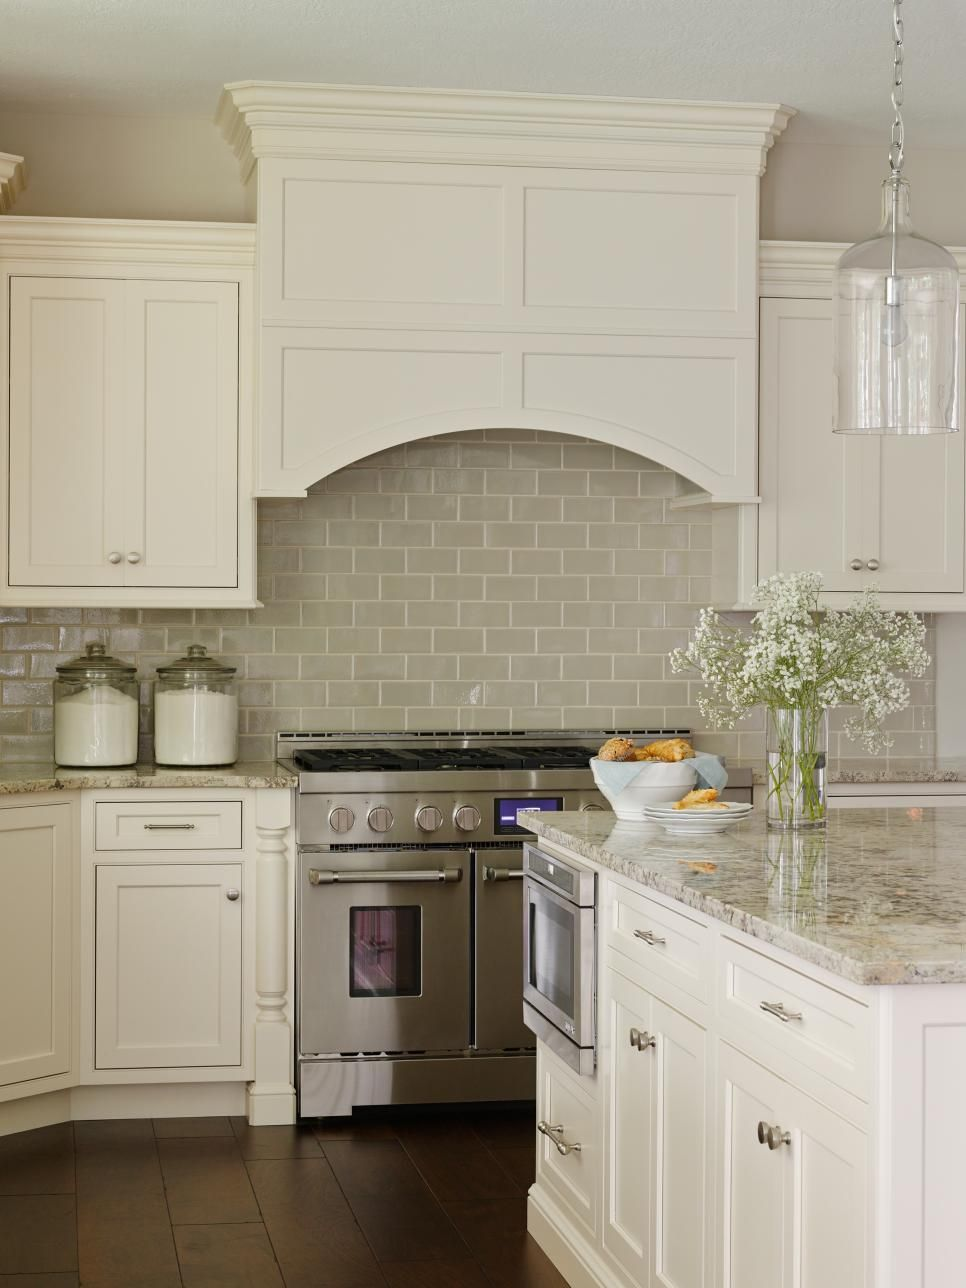 Best 25 Backsplash In Kitchen Ideas On Pinterest Backsplash Kitchen Tile Designs And Subway